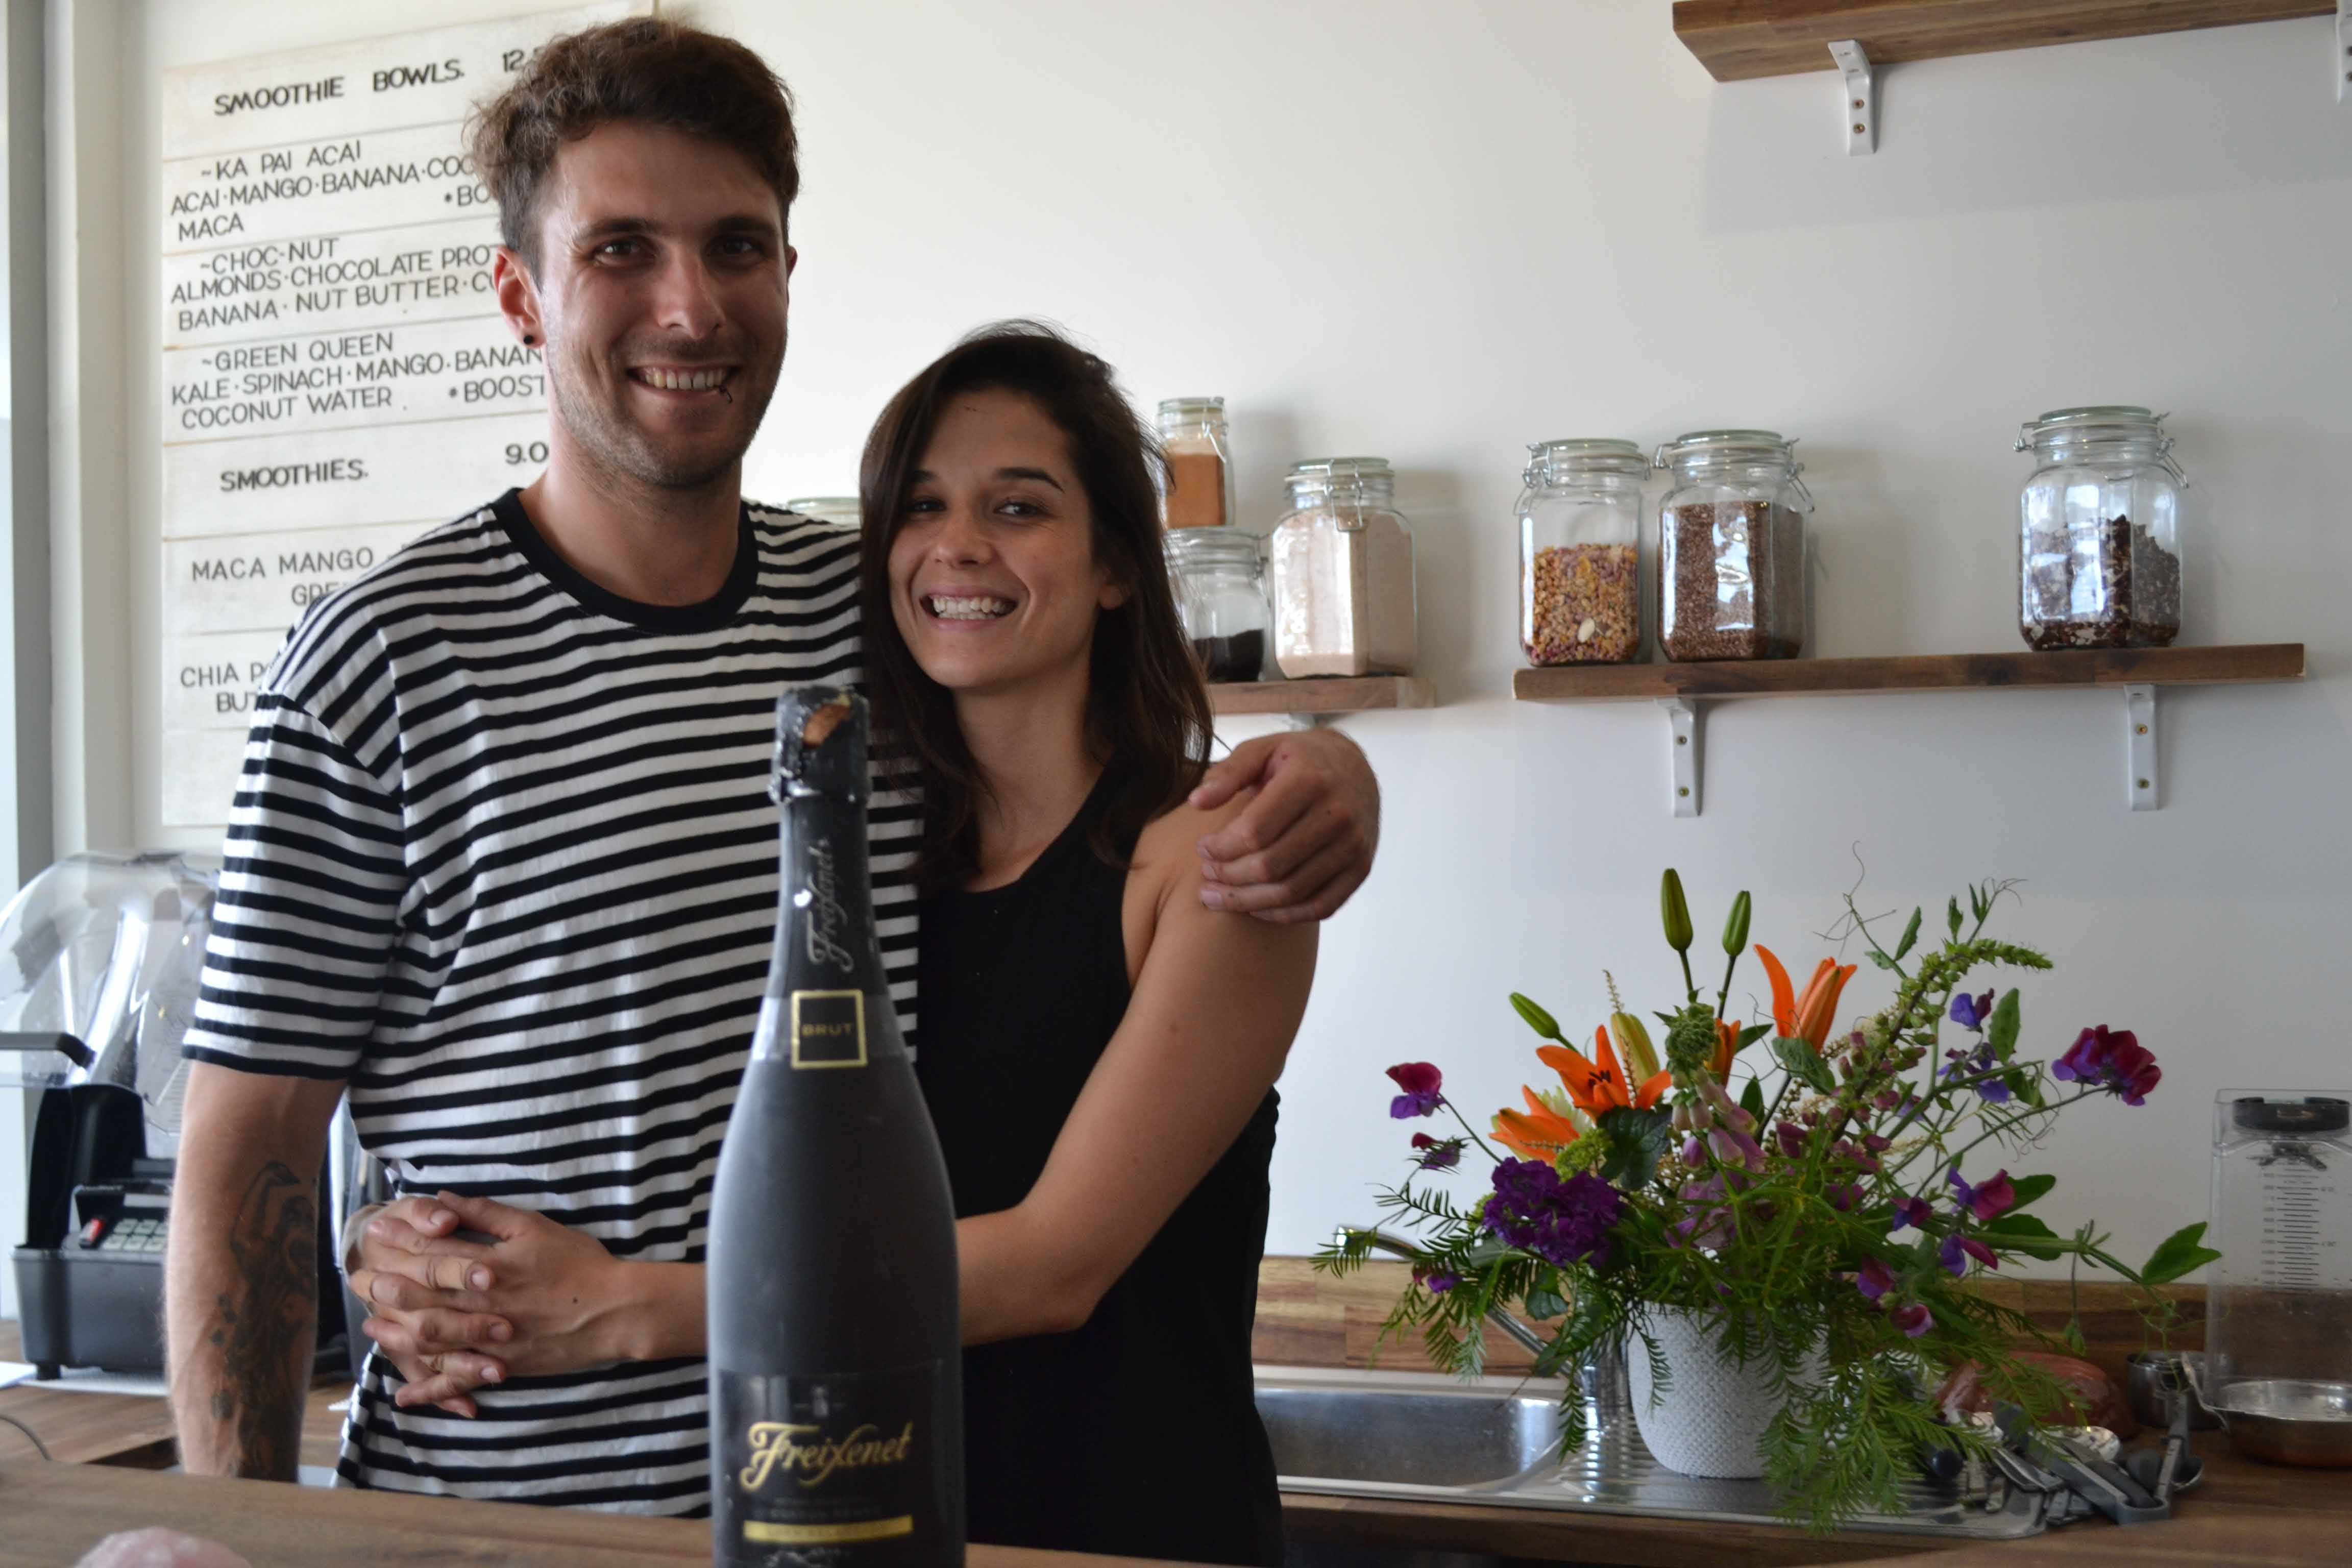 Raph and Eden at Lifted and ready to celebrate with a bottle of bubbly. Flowers courtesy of lessor Chris Leuthart.